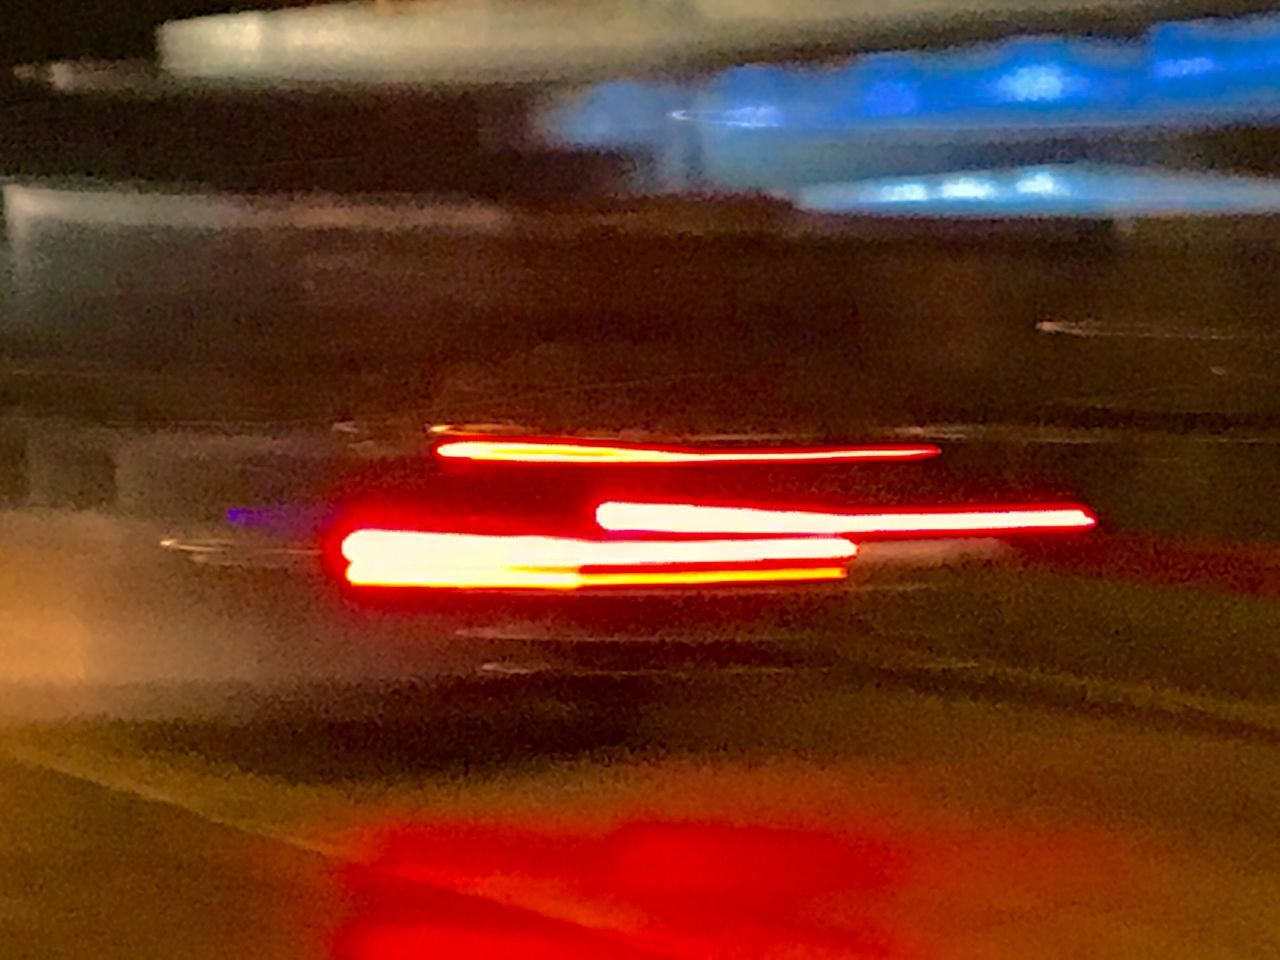 illuminated, car, speed, transportation, night, road, blurred motion, on the move, land vehicle, motion, mode of transport, street, traffic, red, car point of view, light trail, travel, the way forward, car interior, no people, driving, outdoors, defocused, city, close-up